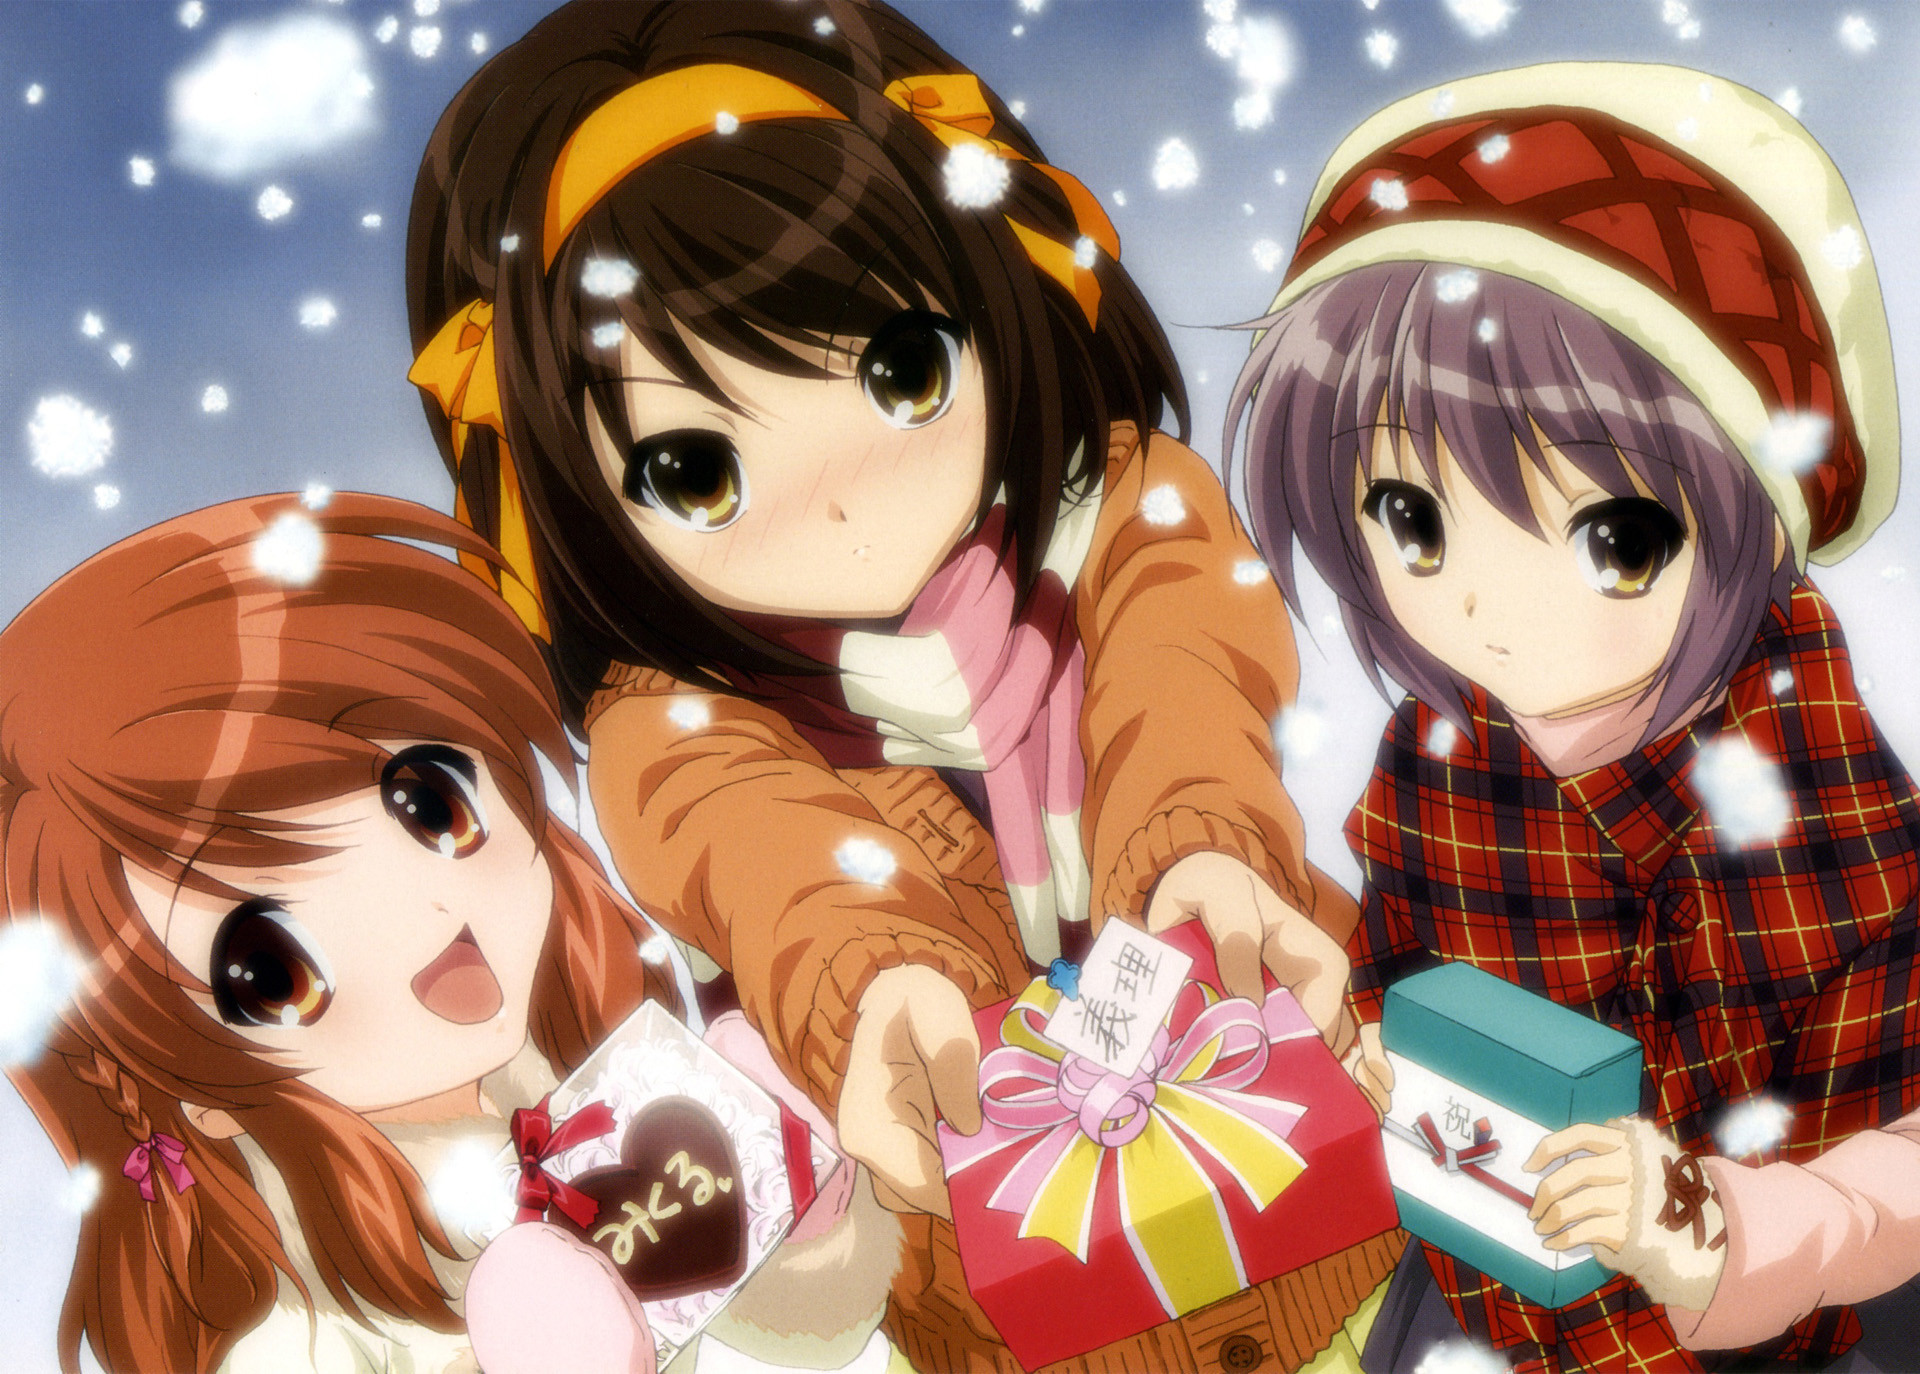 … wallpapers pictures photos; today in anime happy valentine s day anator  …